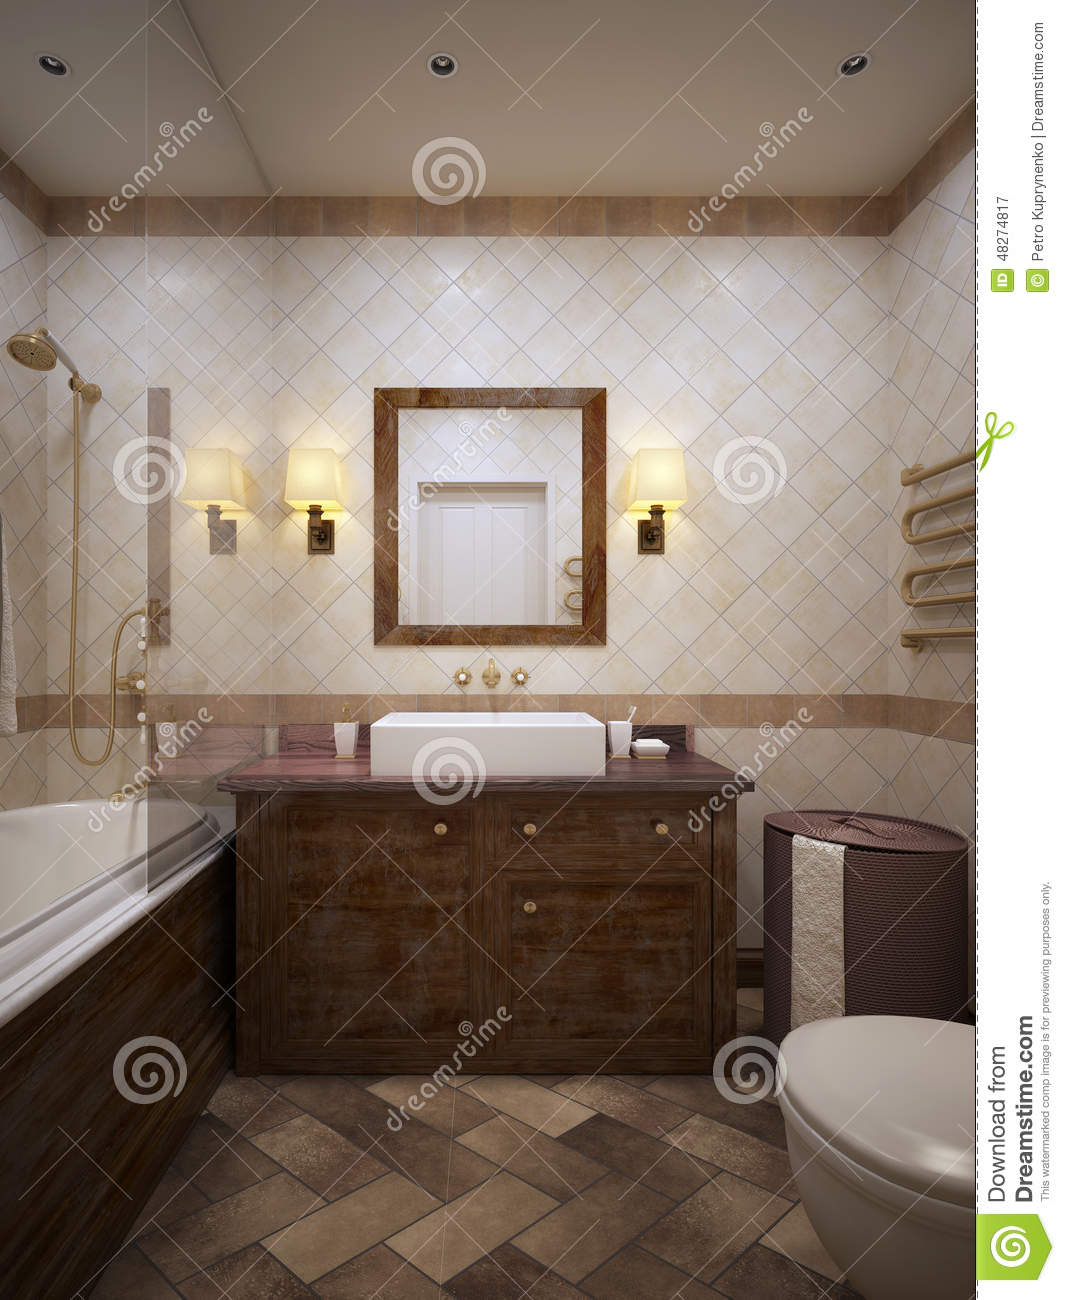 Bathroom in provence style stock illustration image of decorative 48274817 - Image of bath room ...